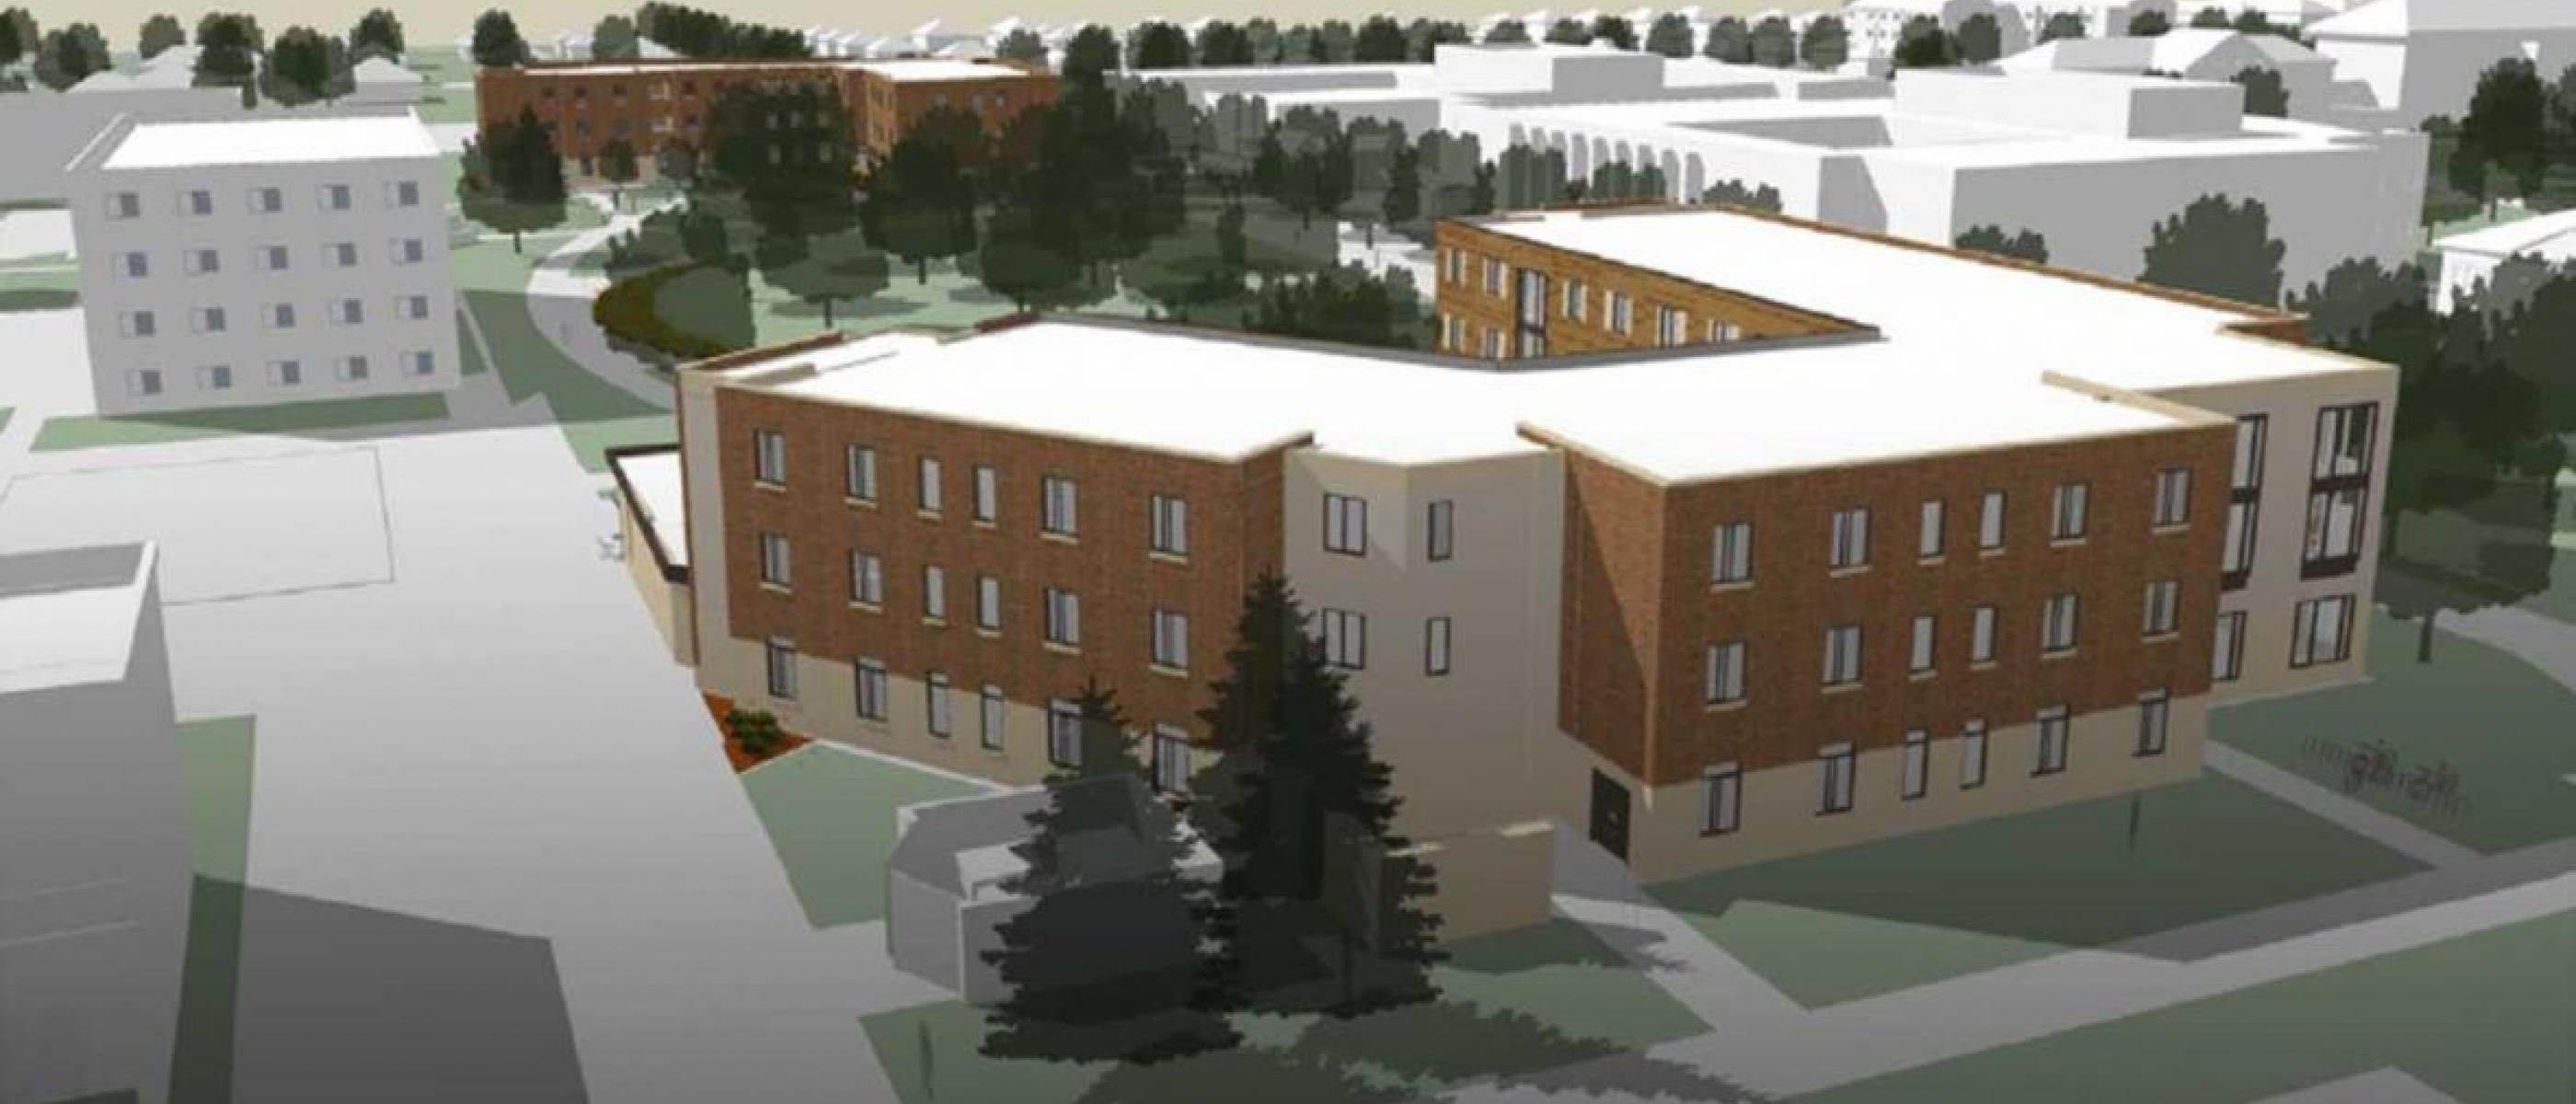 Experience new residence halls